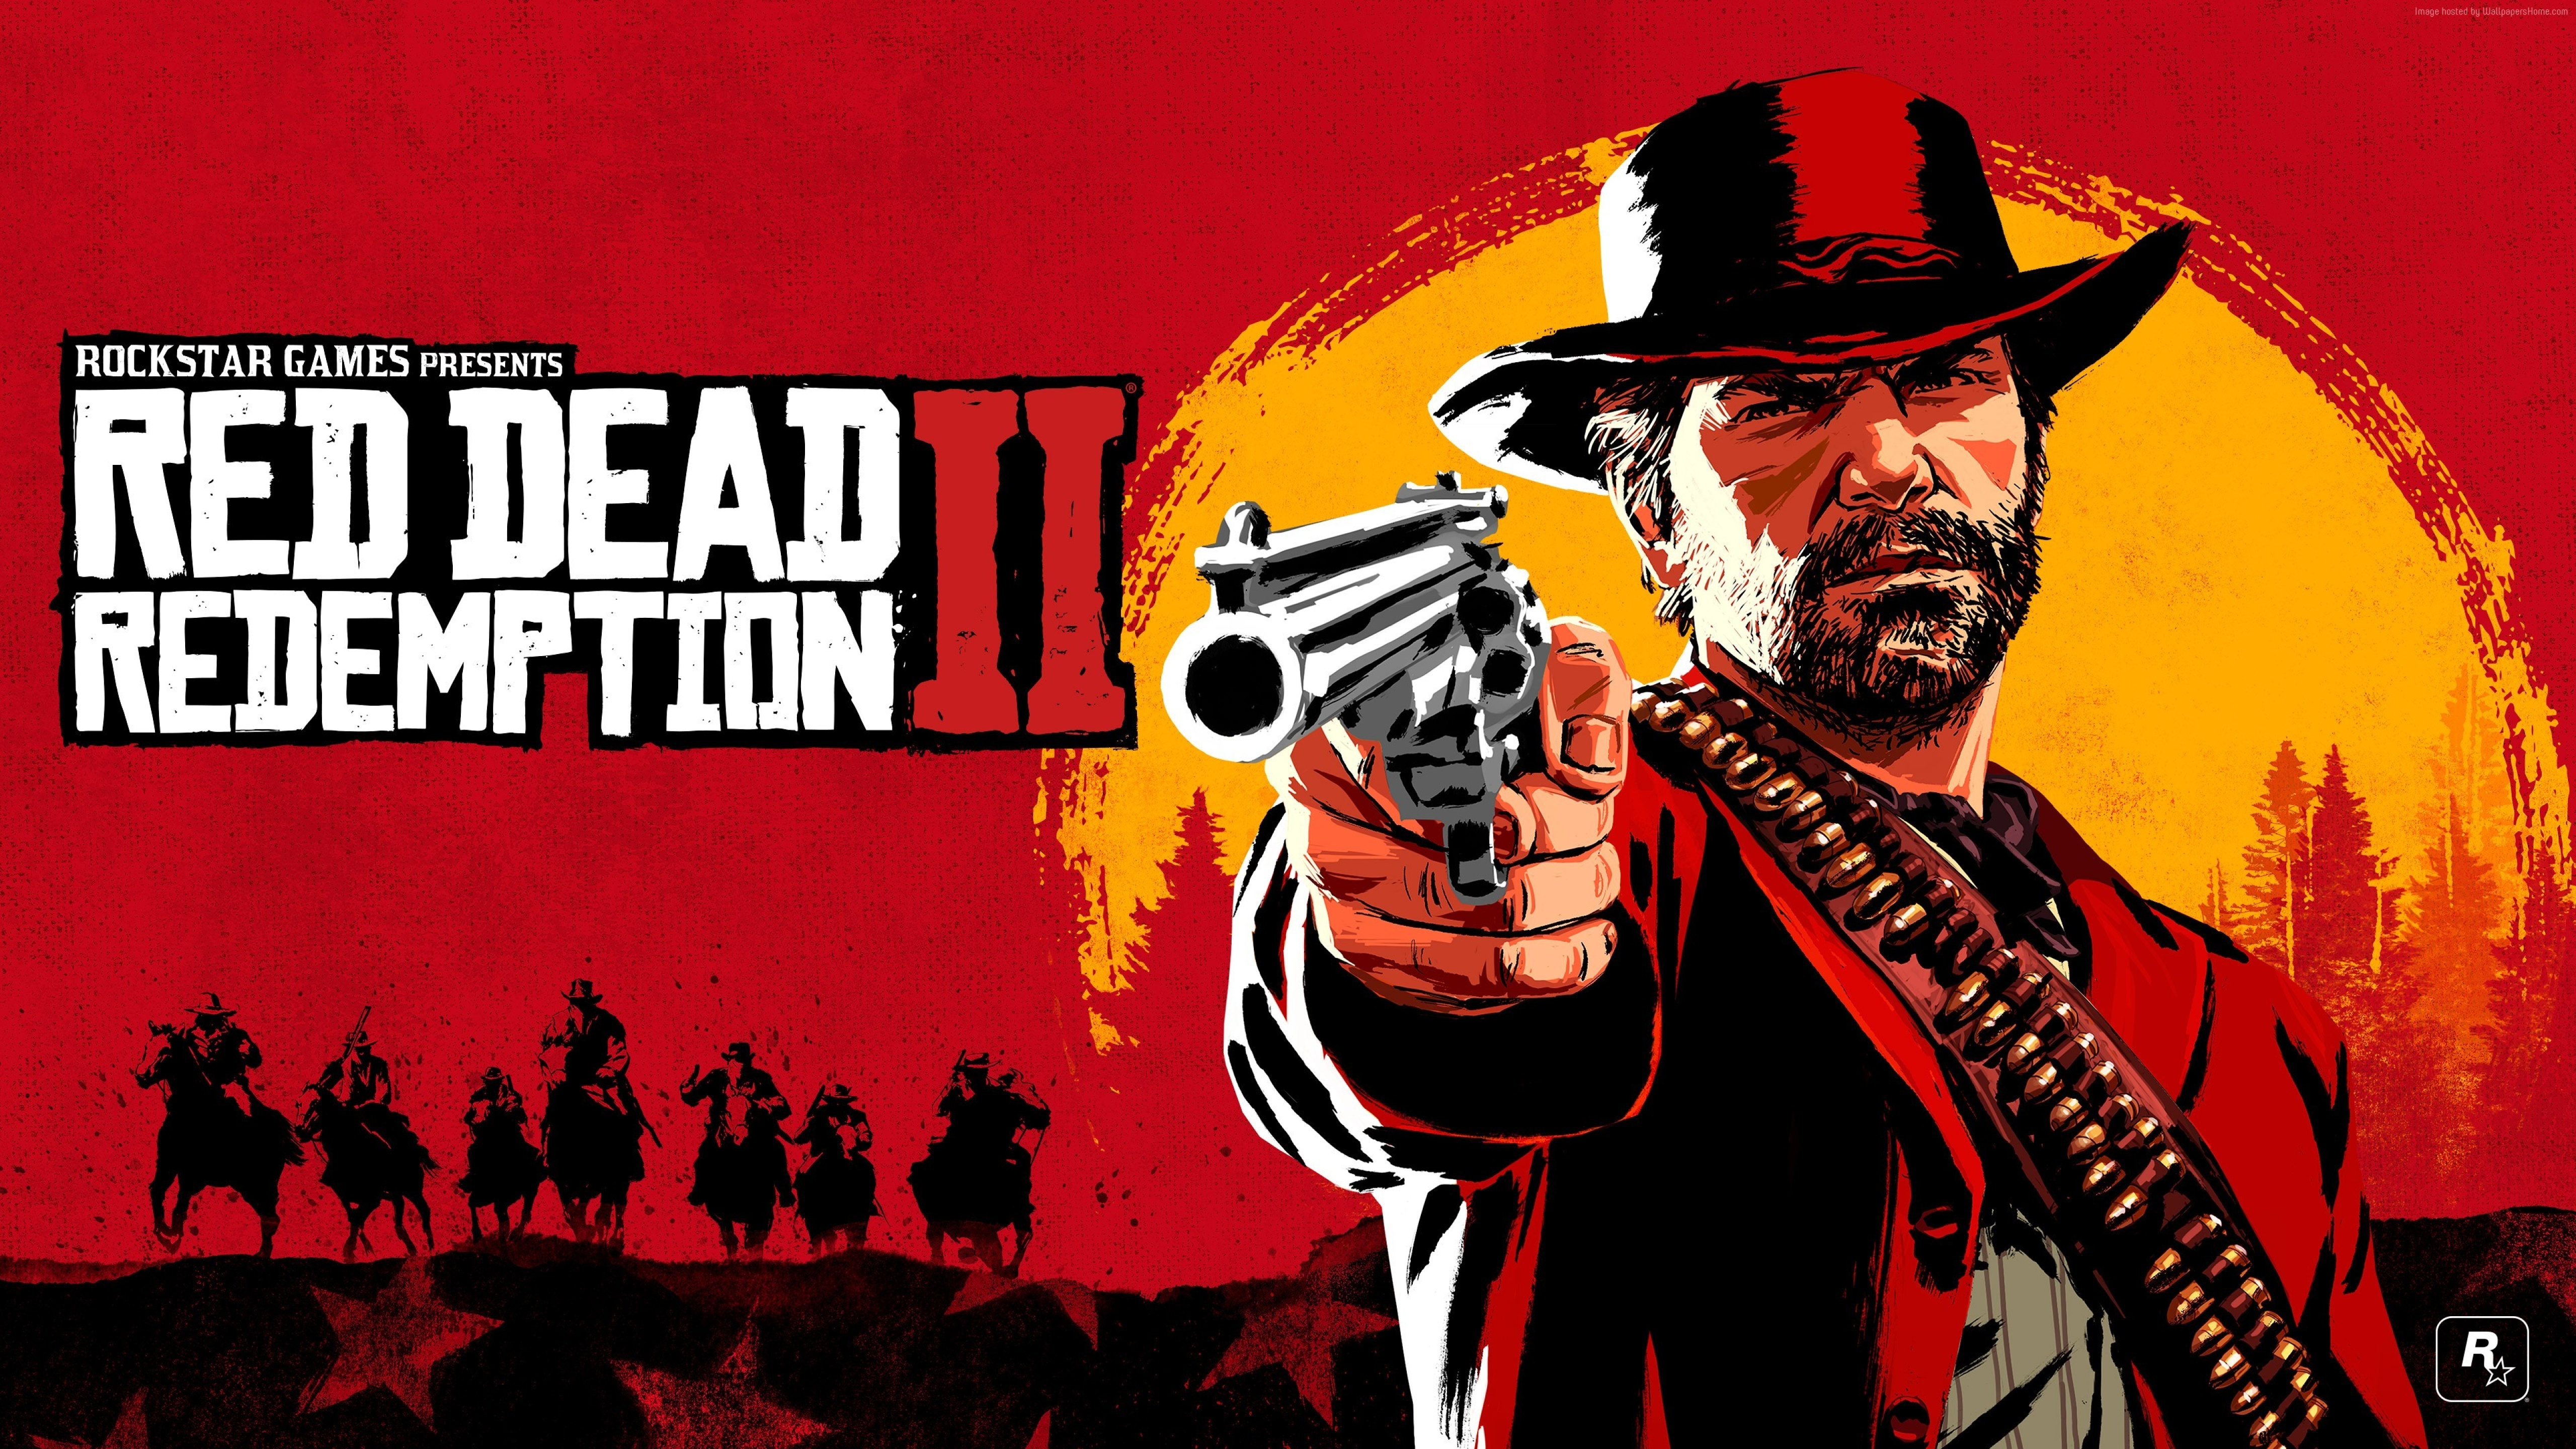 5120x2880 Red Dead Redemption 2 Game Poster 2018 5K ...